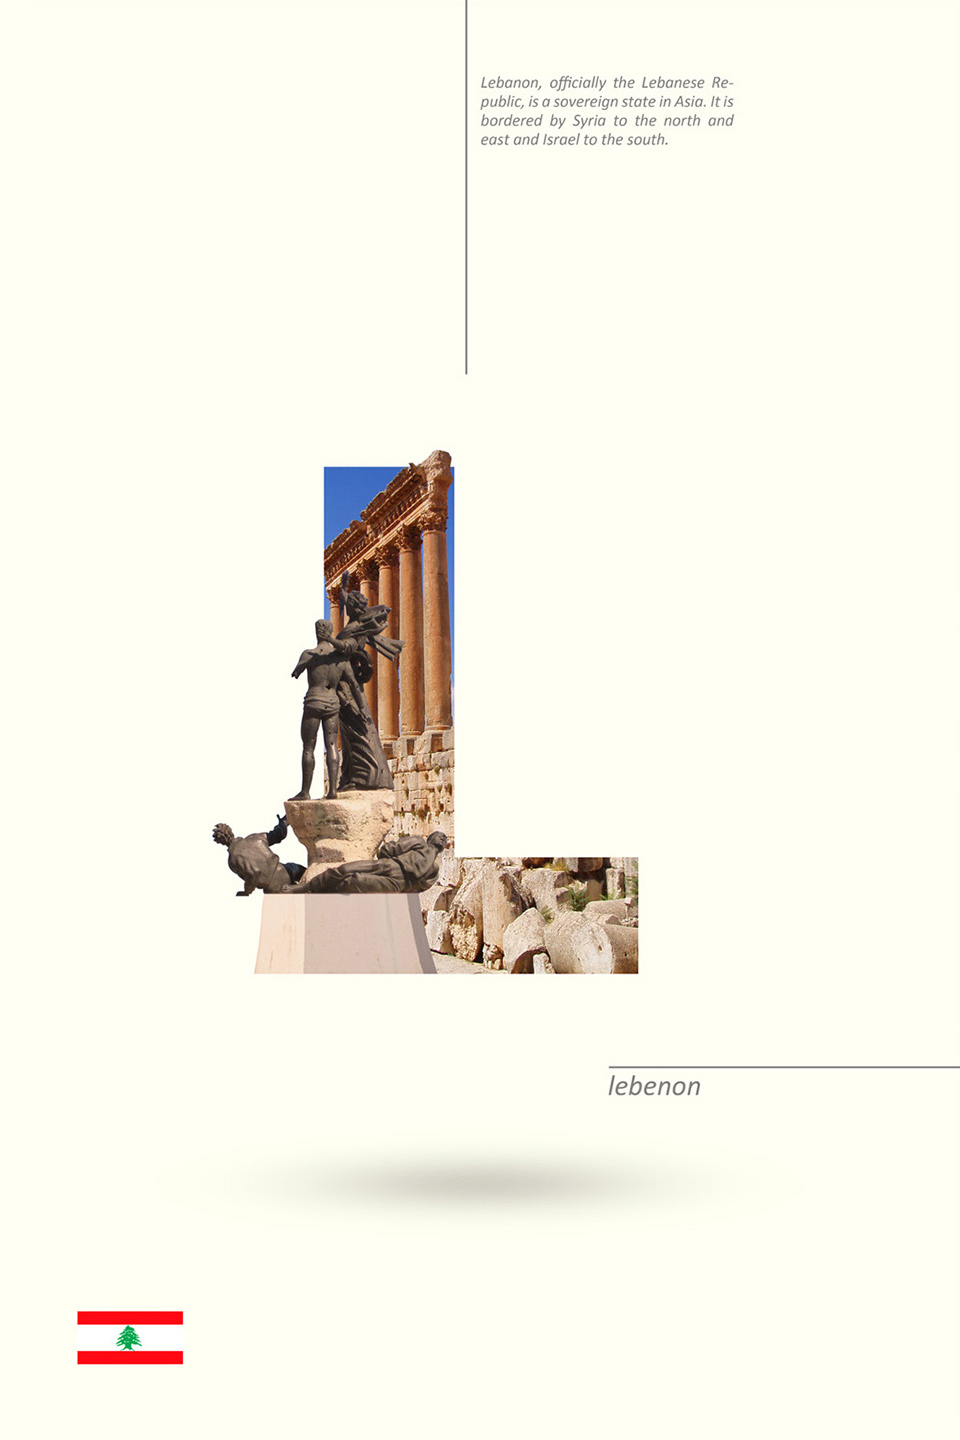 Beautiful Alphabet Series Of Countries And Their Iconic Landmarks - Lebanon